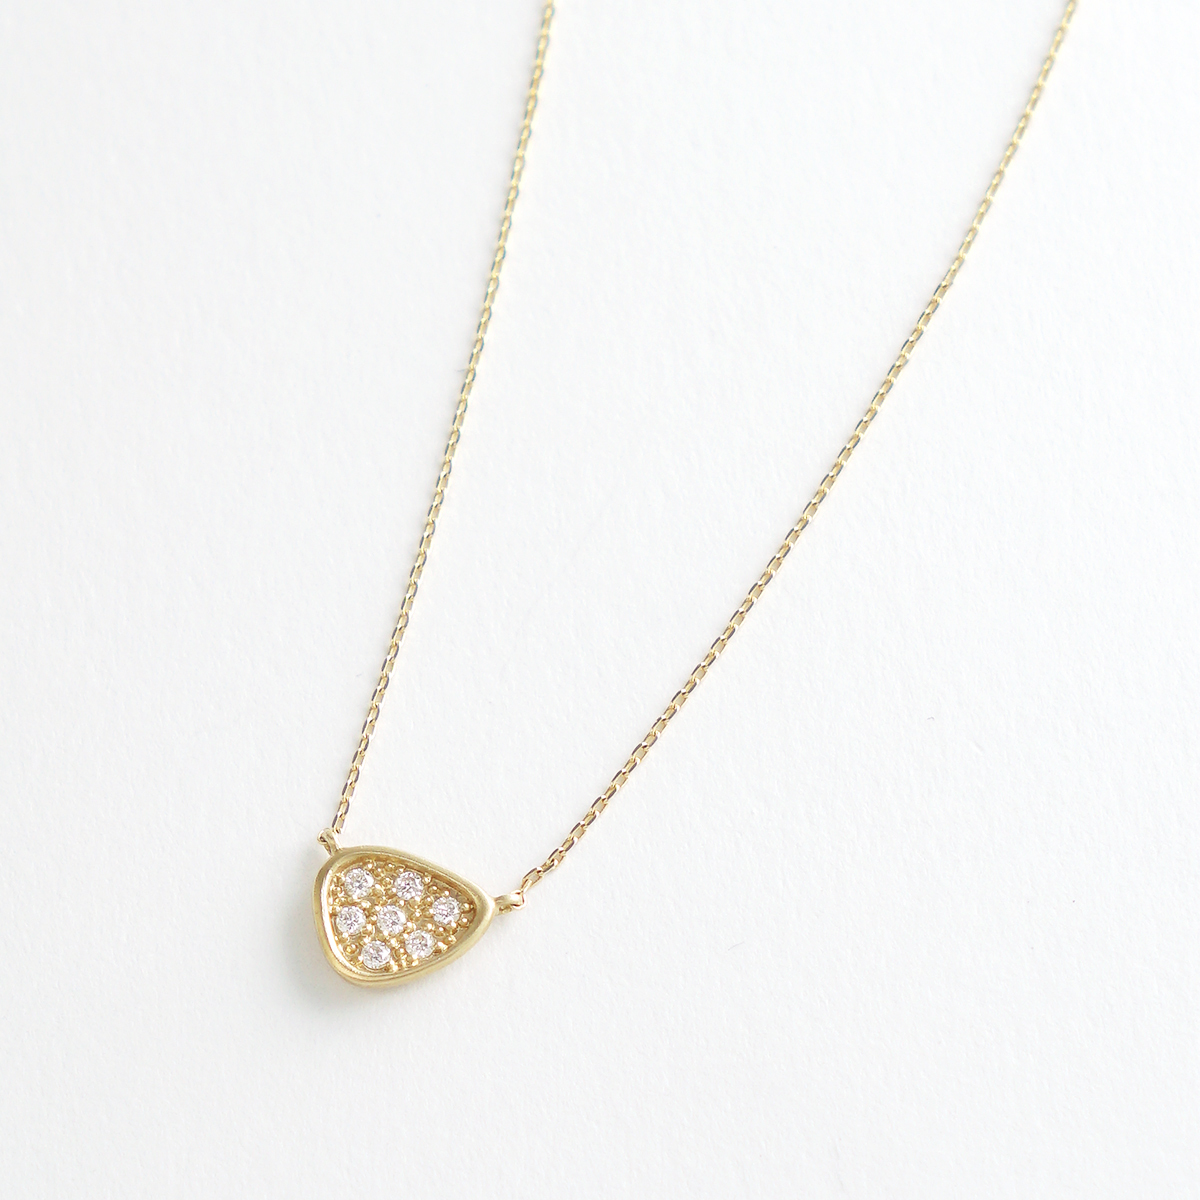 The Heritage triangle necklace